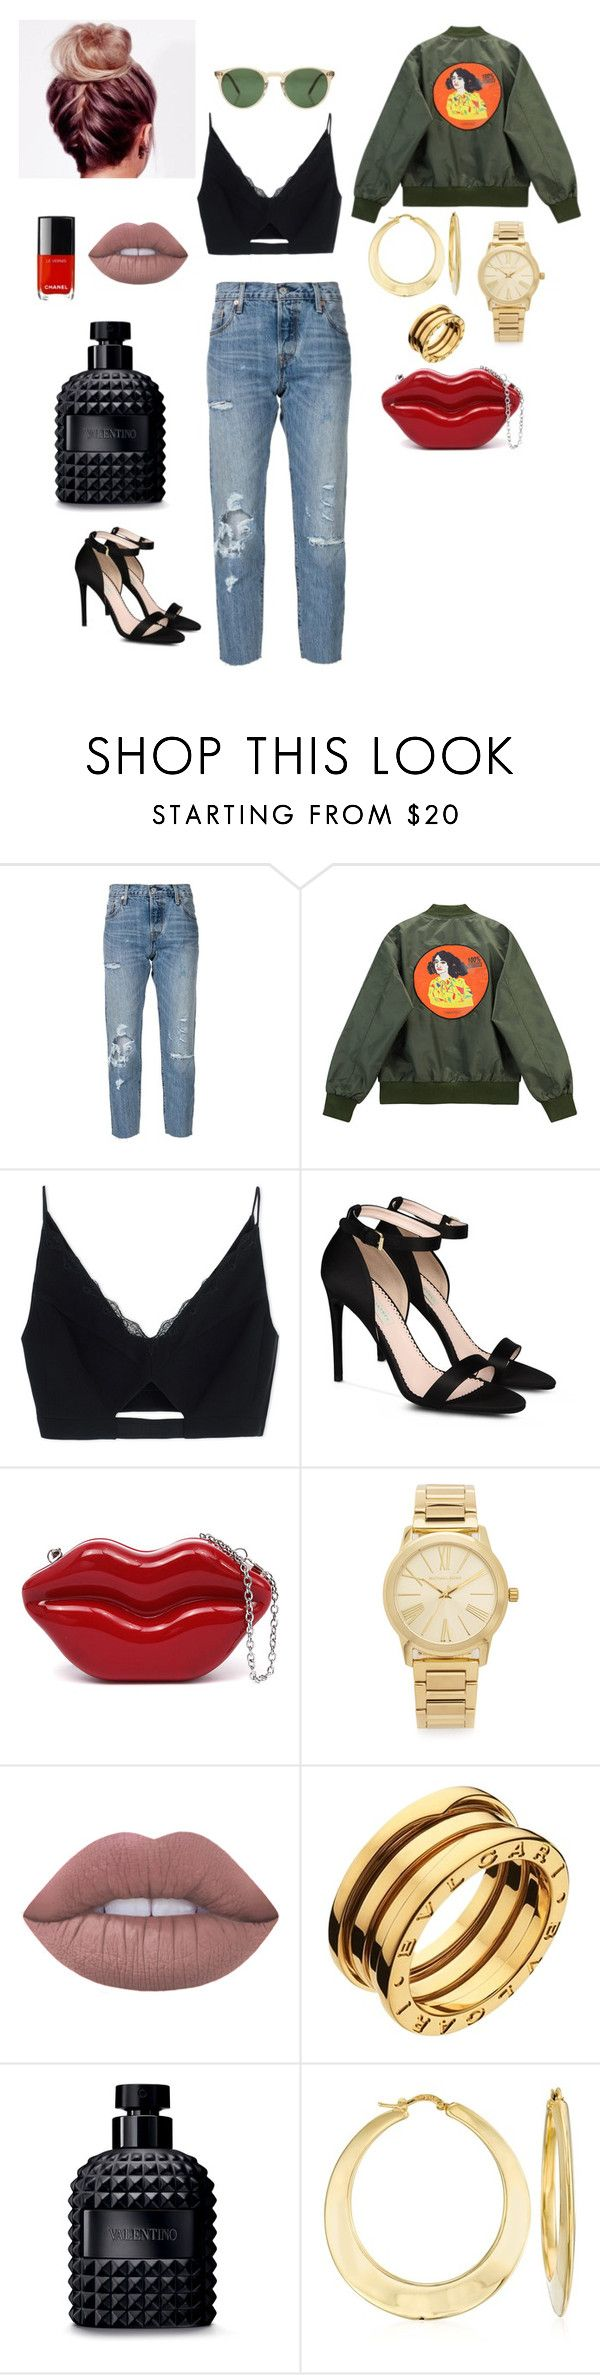 """GETO CHIC.."" by evitaom on Polyvore featuring Levi's, Chicnova Fashion, Versace, STELLA McCARTNEY, Michael Kors, Lime Crime, Bulgari, Valentino, Ross-Simons and Oliver Peoples"